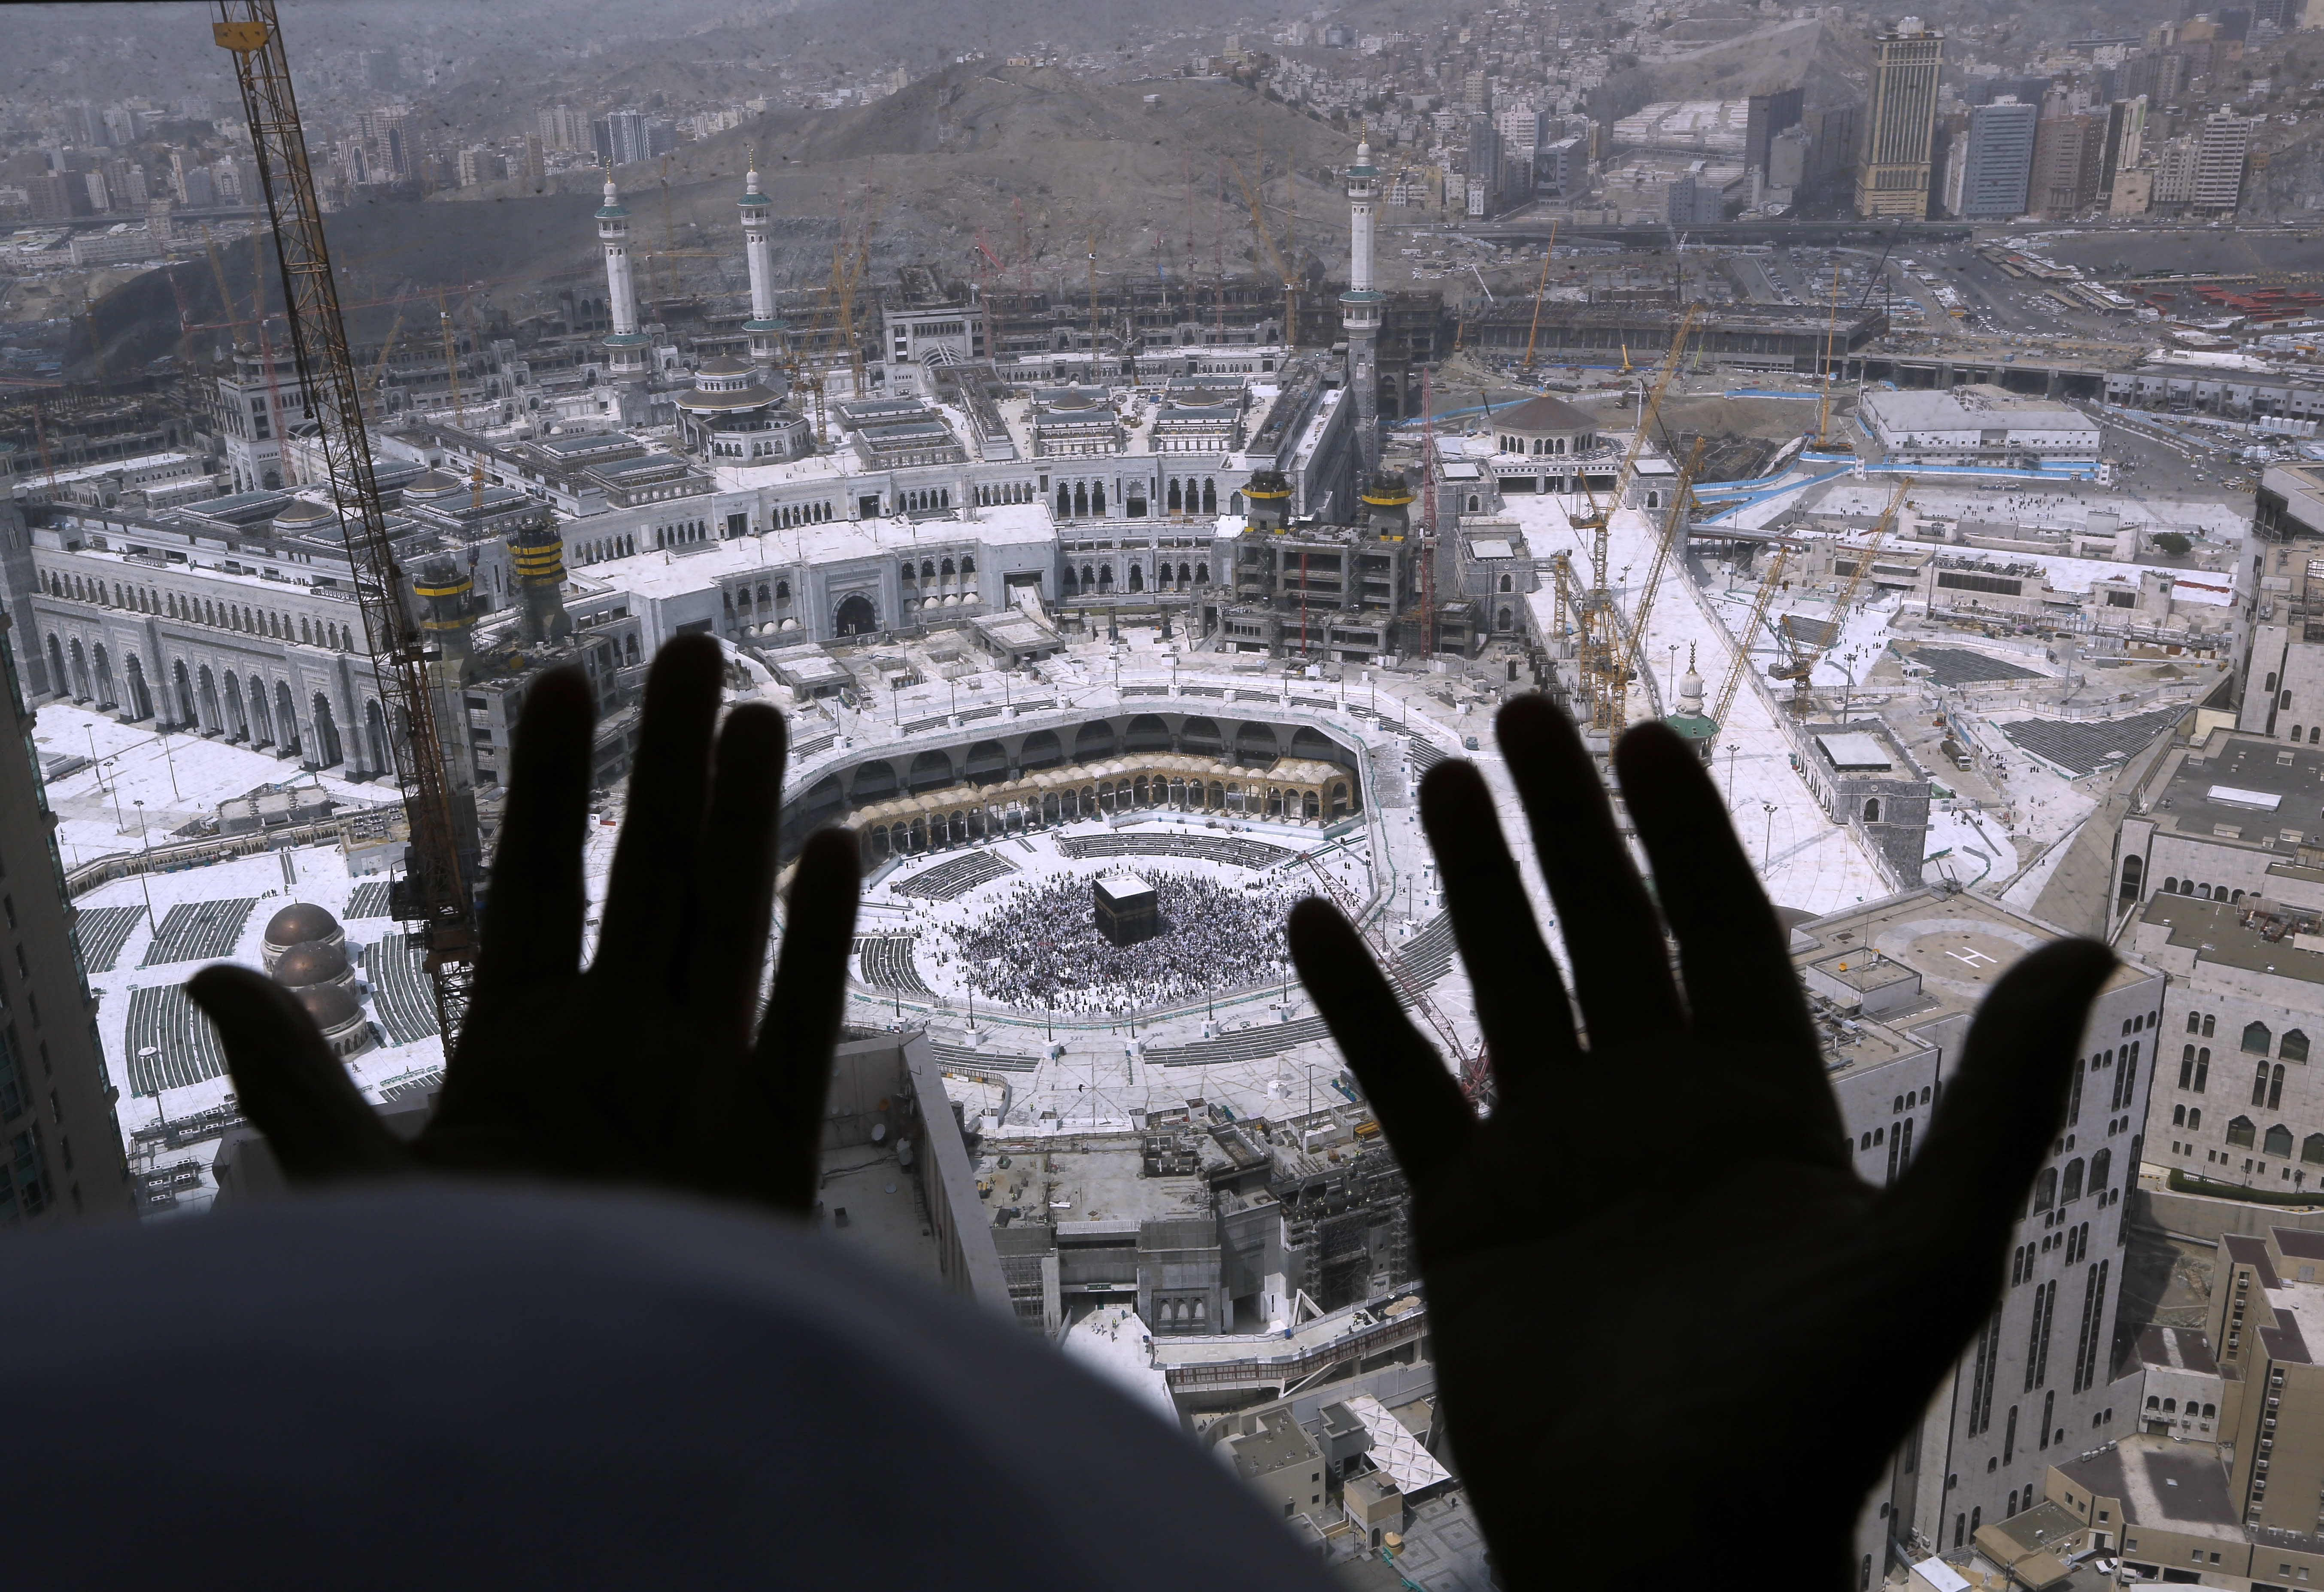 A Muslim prays from a hotel overlooking the Kaaba, the cubic building at the Grand Mosque, in the Muslim holy city of Mecca, Saudi Arabia, Wednesday, March 4, 2020. On Wednesday, Saudi Arabia's Deputy Health Minister Abdel-Fattah Mashat was quoted on the state-linked news site Al-Yaum saying that groups of visitors to Mecca from inside the country would now also be barred from performing the pilgrimage, known as the umrah. (AP Photo/Amr Nabil)